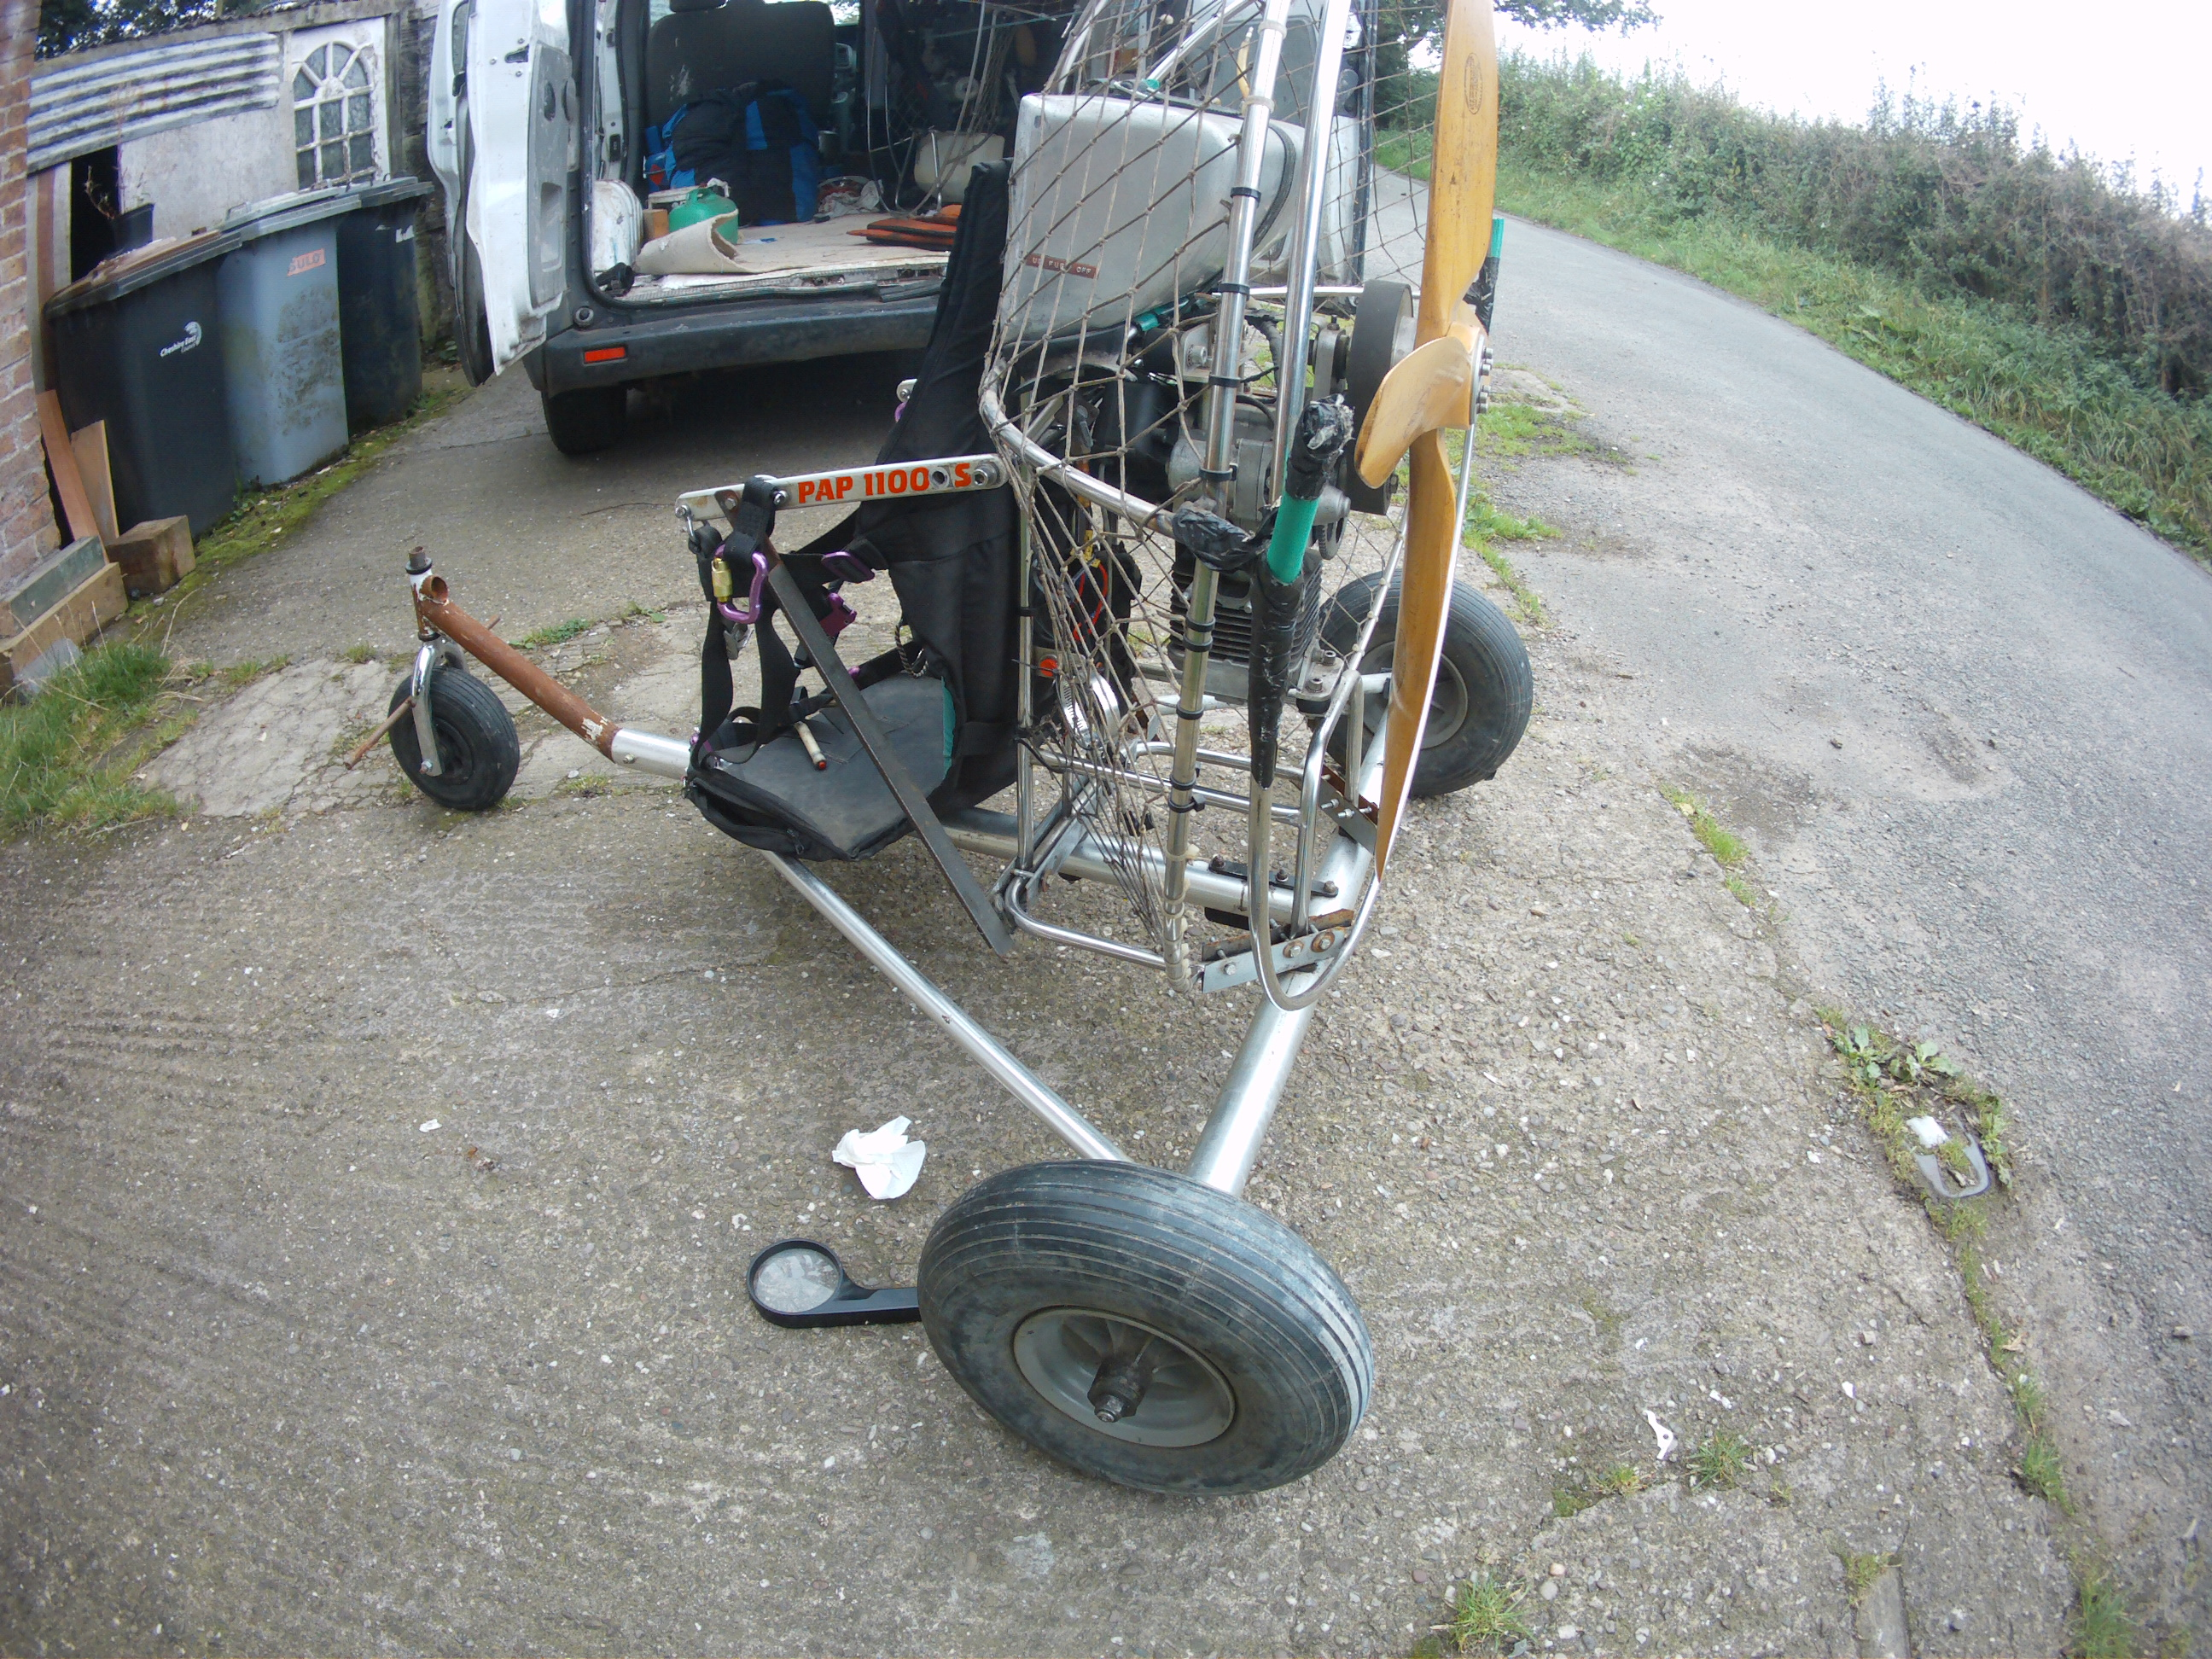 Walbro-32 carb wanted - General paramotor discussion - www